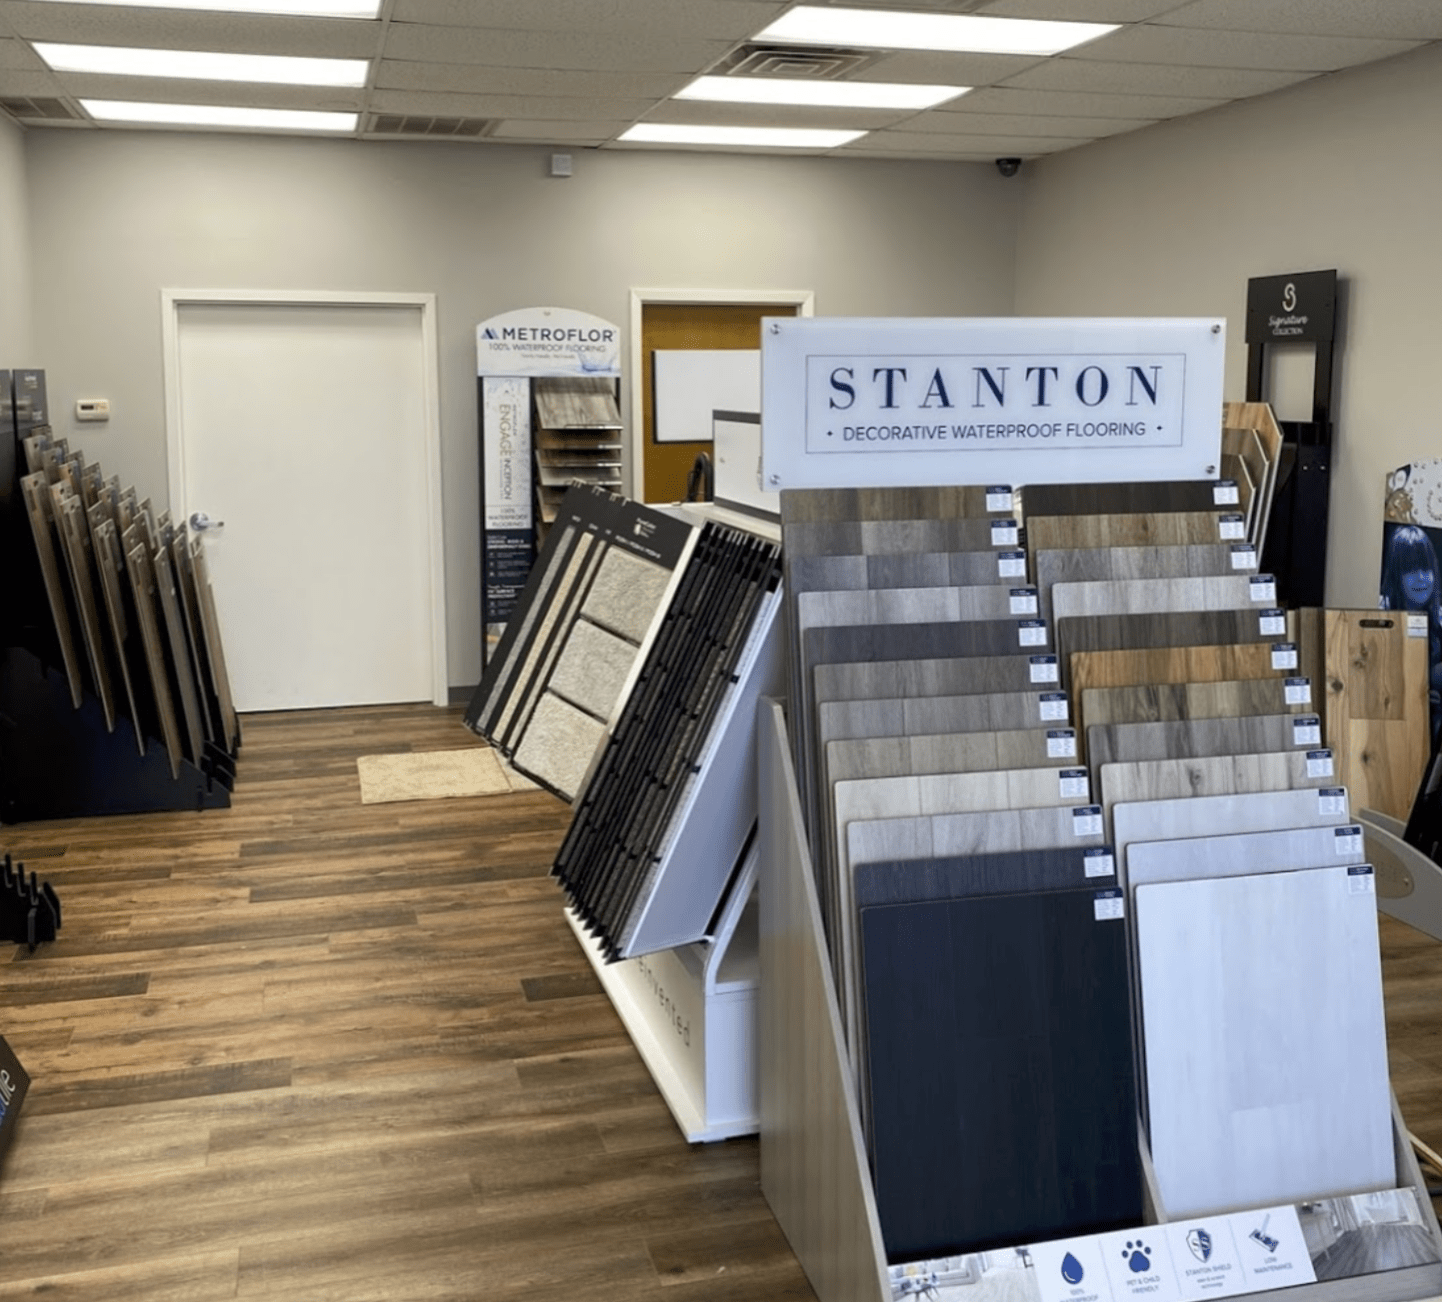 Stanton waterproof flooring for your Hoschton, GA home from White Oak Flooring and Design